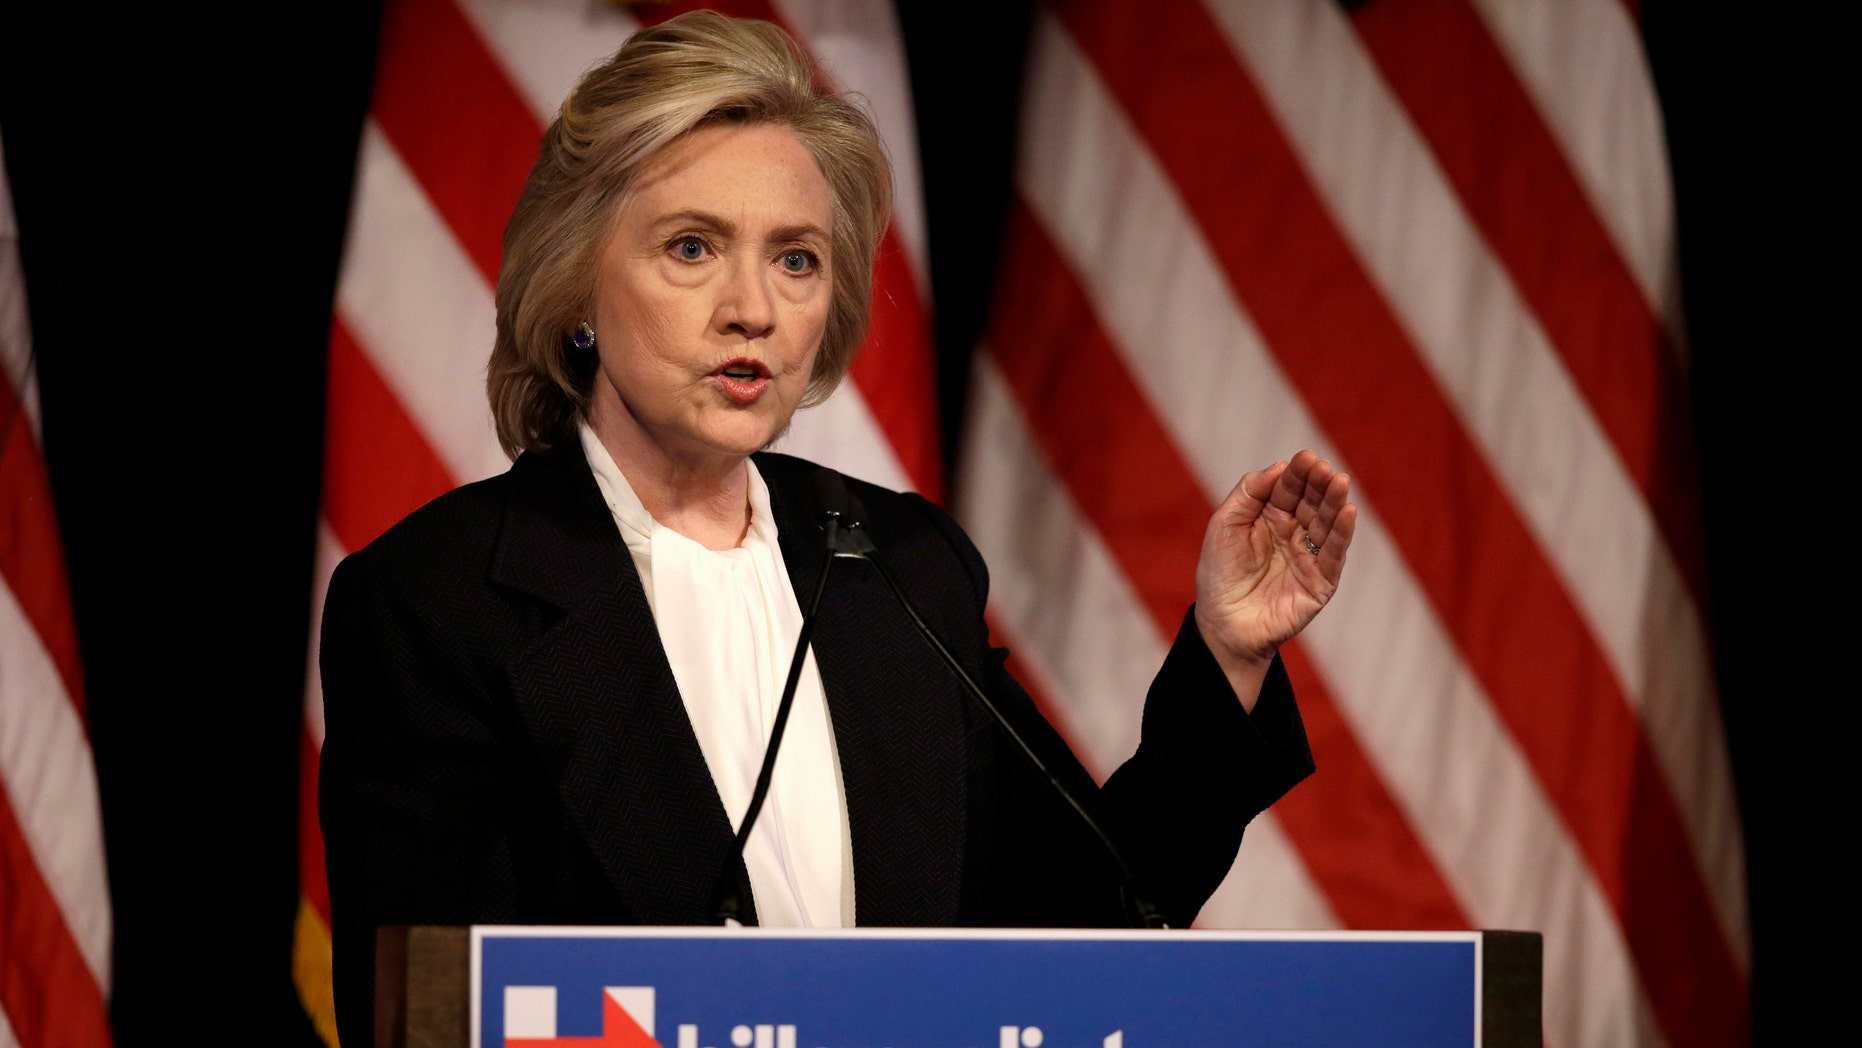 Hillary Rodham Clinton at a campaign event in New York, Monday, July 13, 2015.